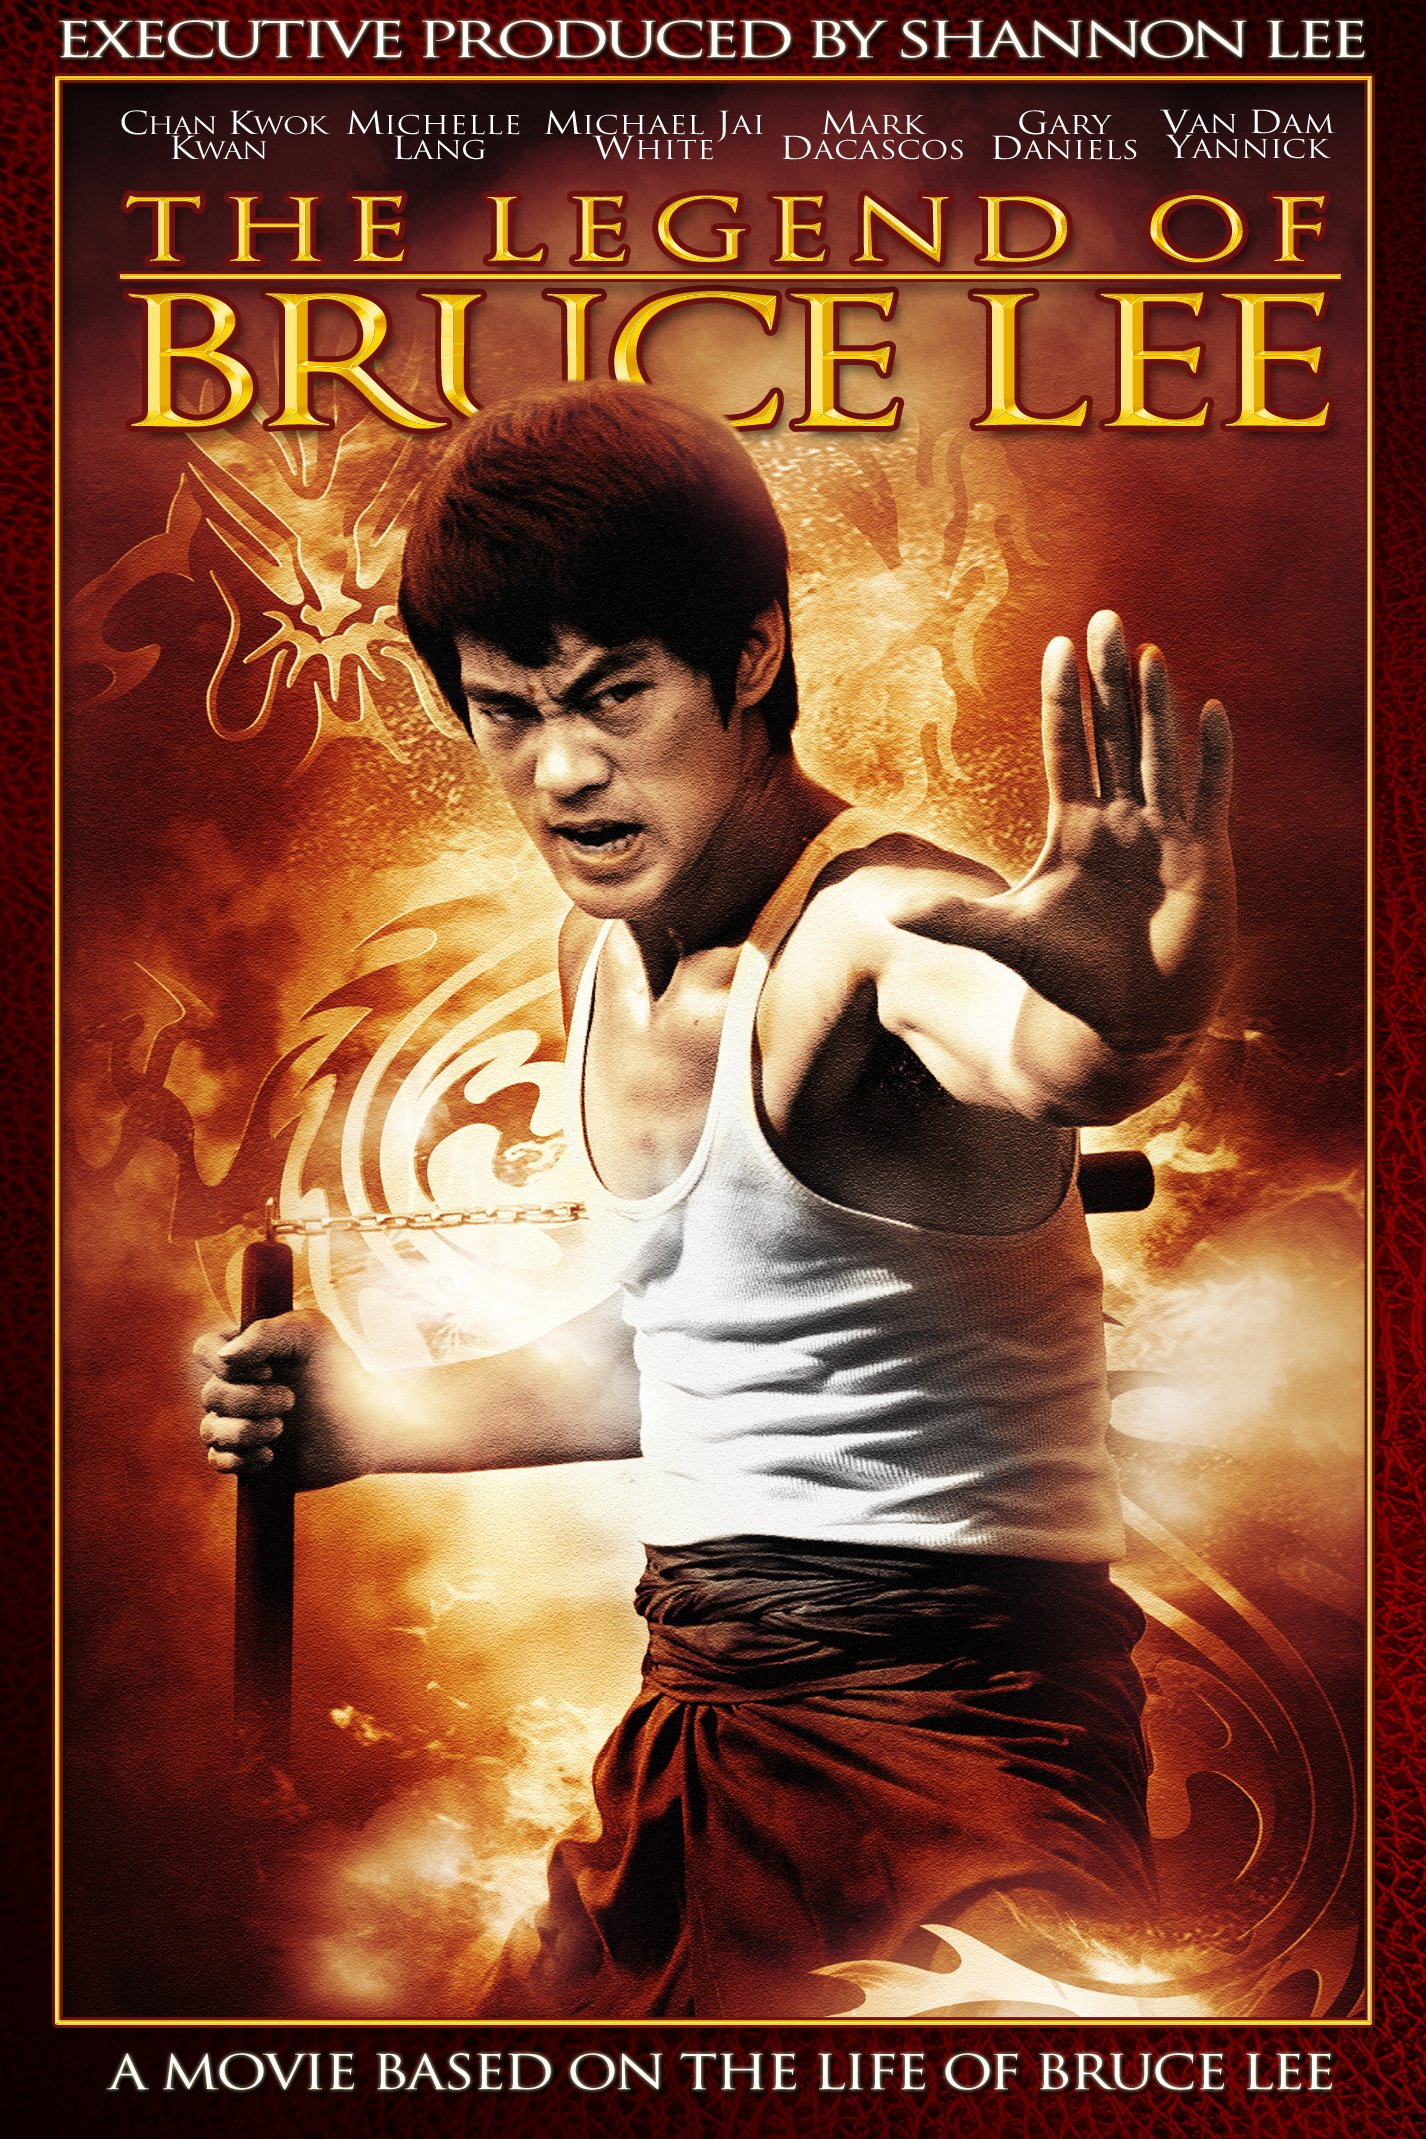 The legend of bruce lee episode 15 youtube.